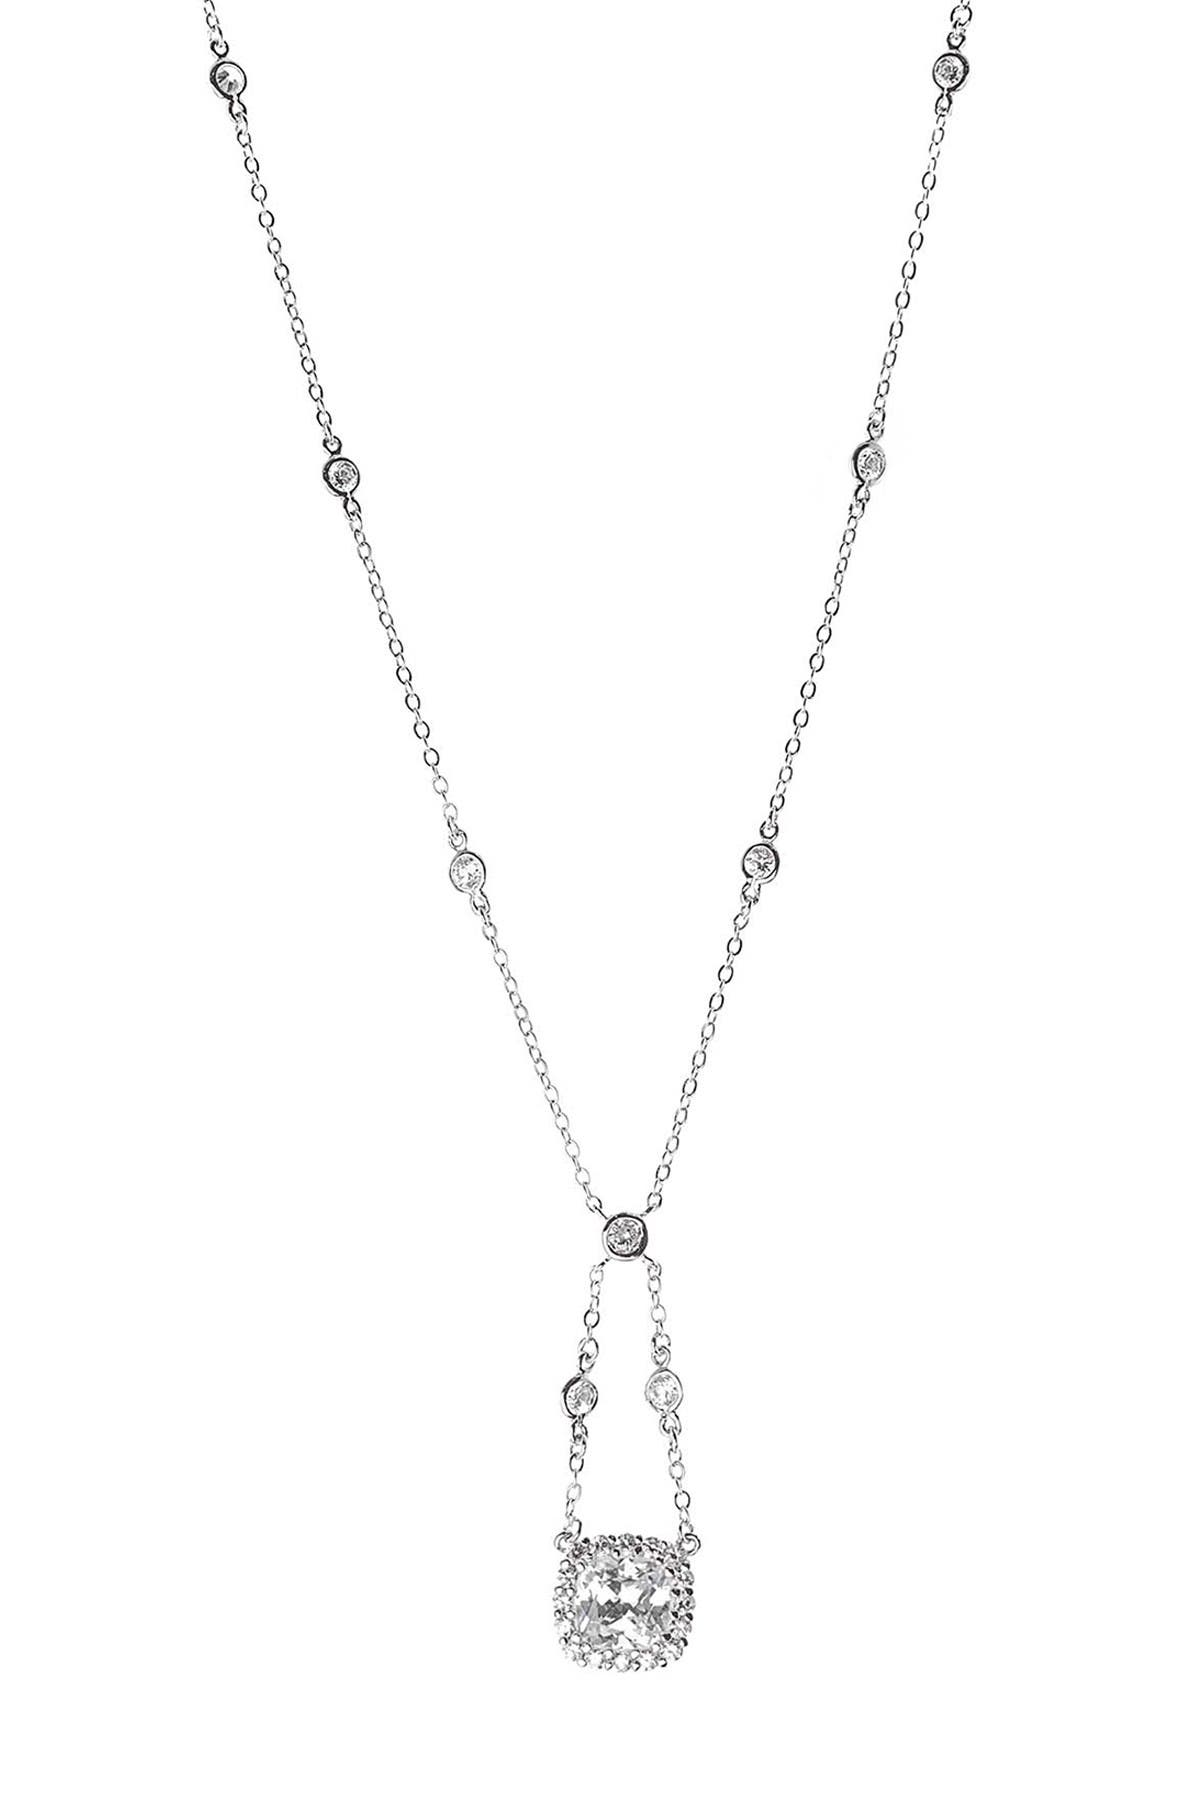 Image of CZ By Kenneth Jay Lane CZ Cushion Swing Pendant Necklace